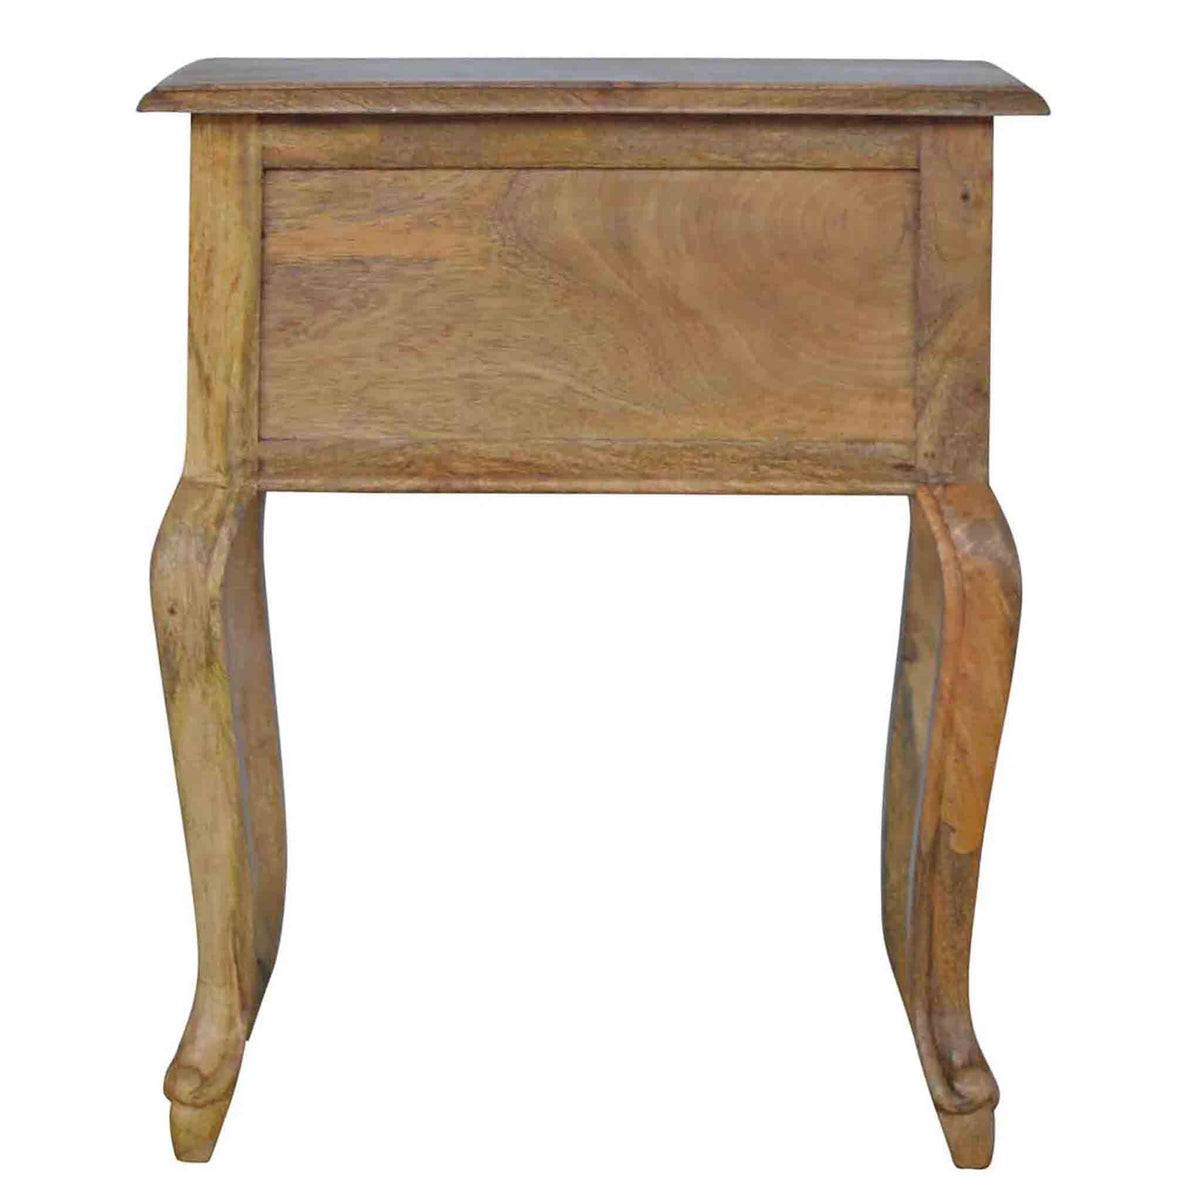 Back panel view of The Artisan French Style 1 Drawer Bedside Table